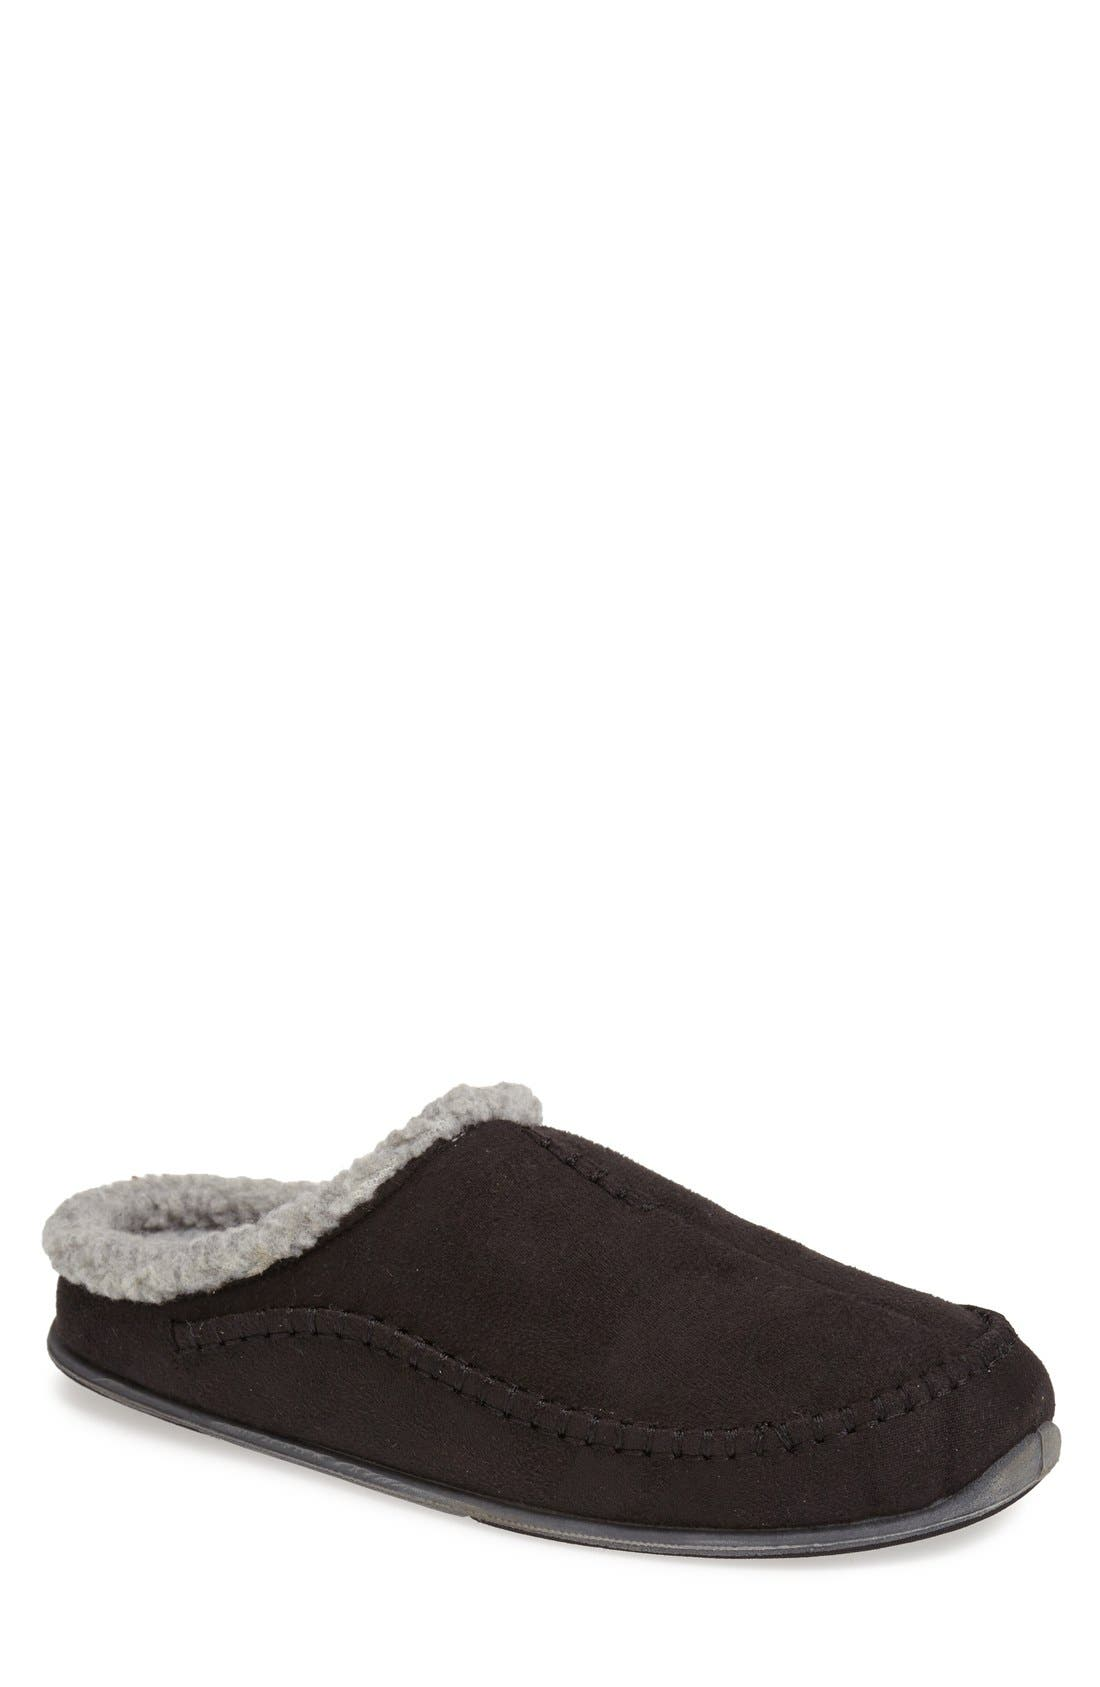 'Nordic' Slipper,                             Main thumbnail 1, color,                             Black